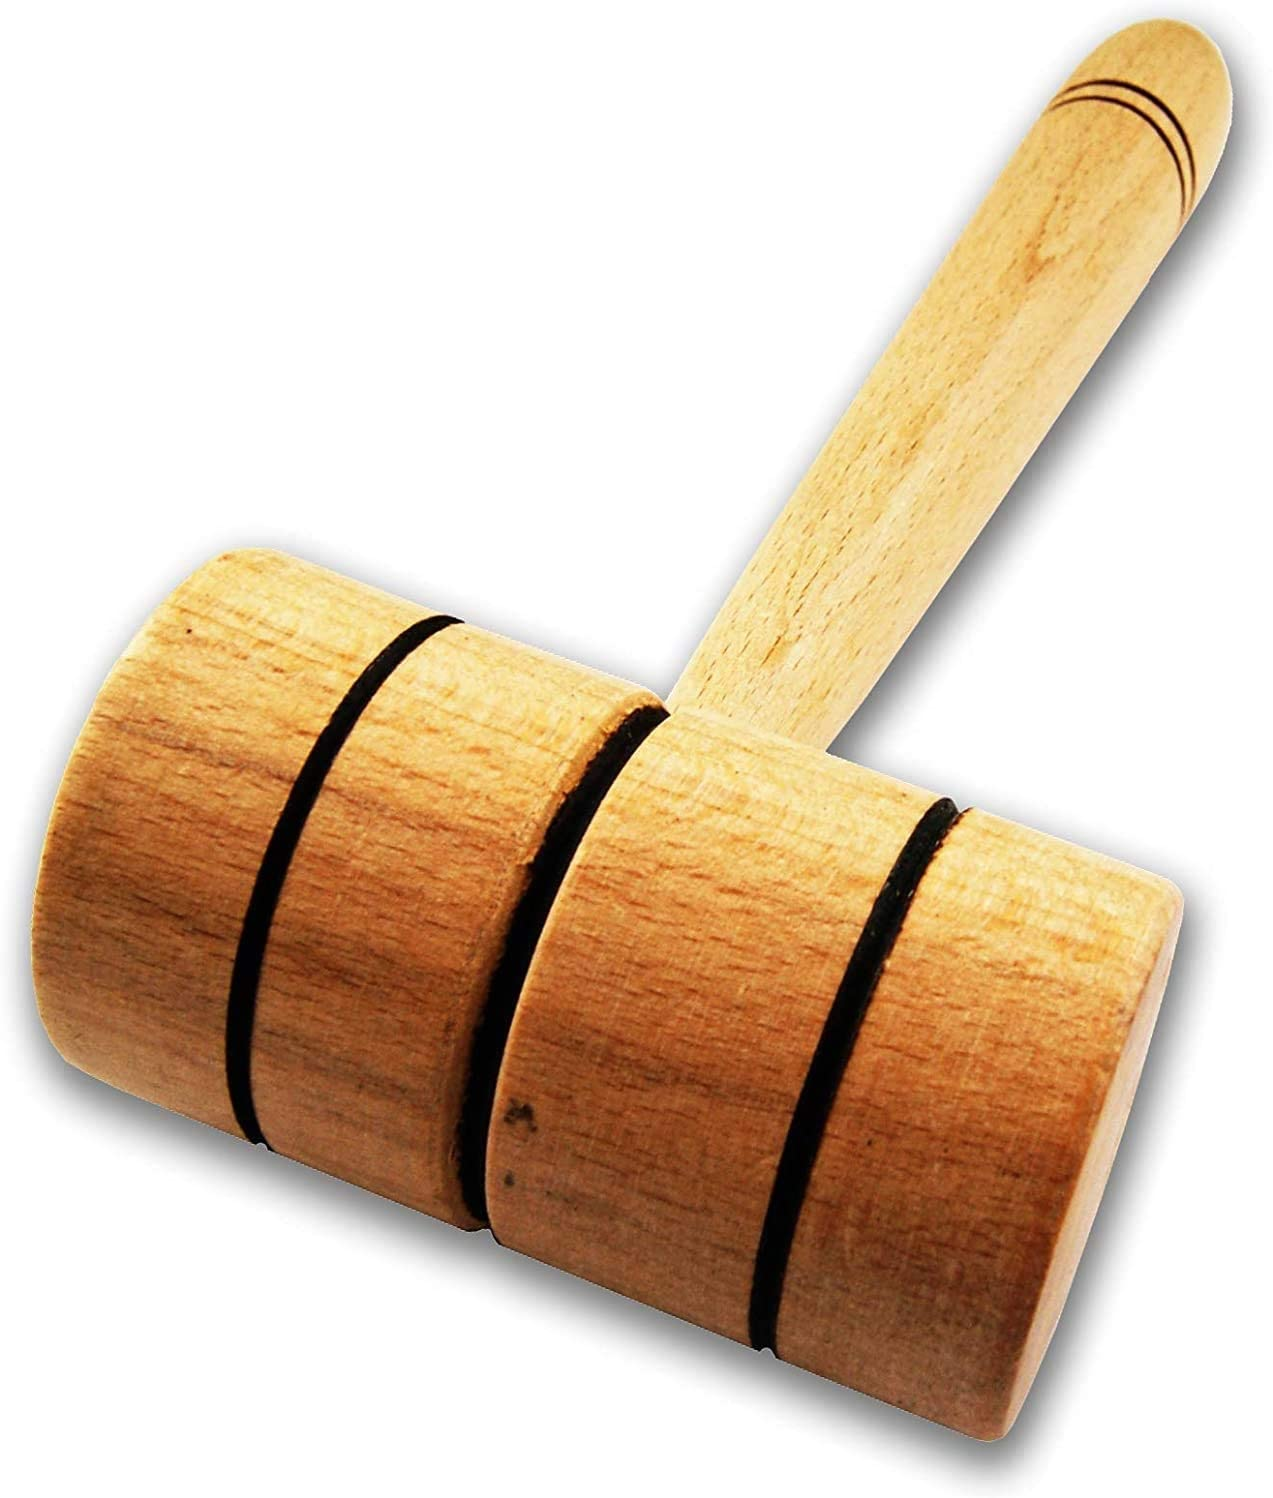 Wooden Meat Tenderizer Mallet - Practical Kitchen Tool Natural Premium Wood Heavy Duty Hammer Mallet Tool & Chicken Pounder